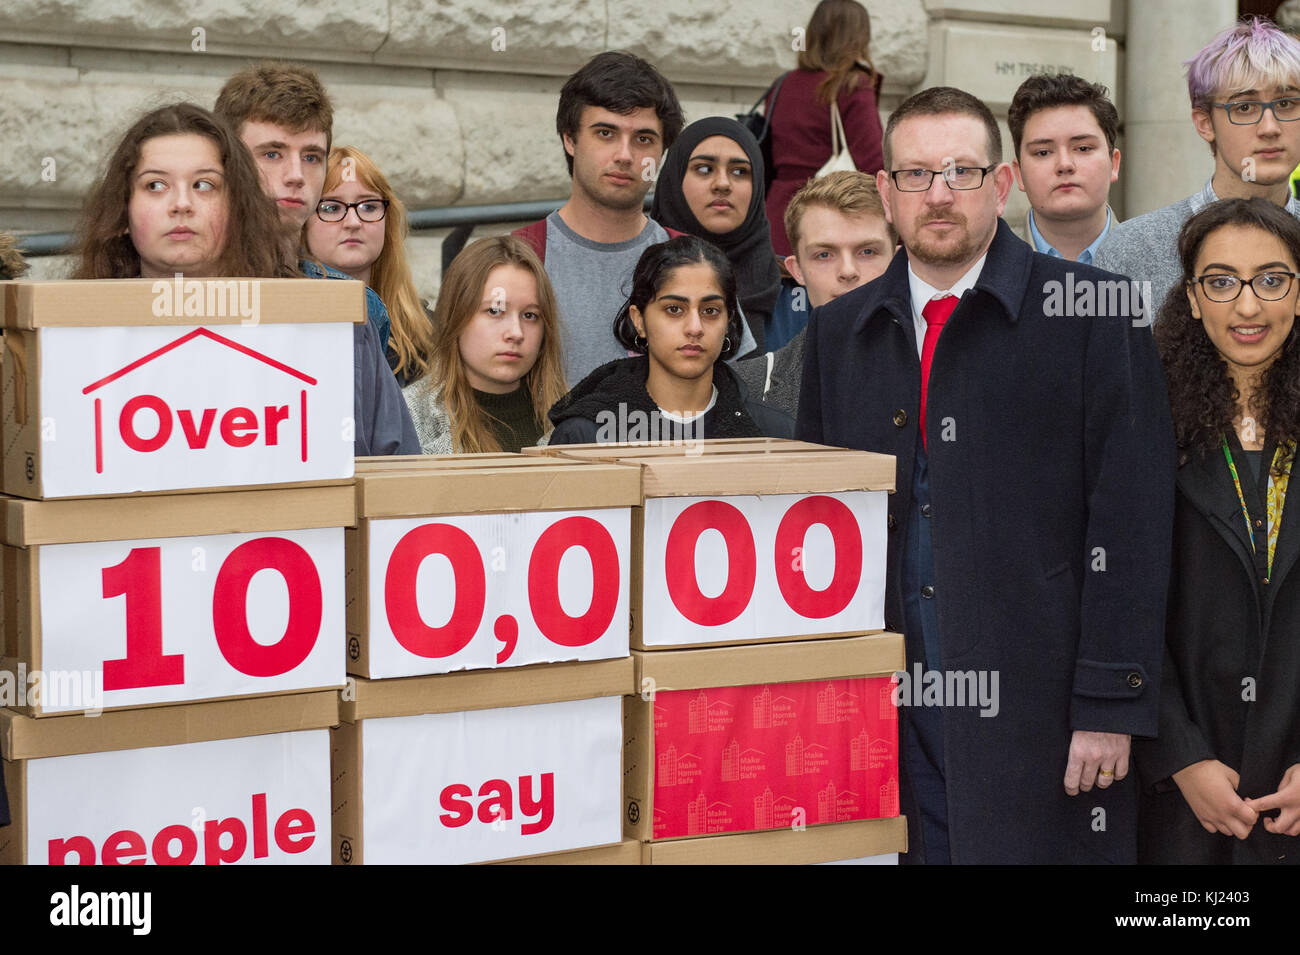 London, United Kingdom. 21st November 2017.Peter Dowd MP, Labour's Shadow Chief Secretary to the Treasury and Andrew Stock Photo